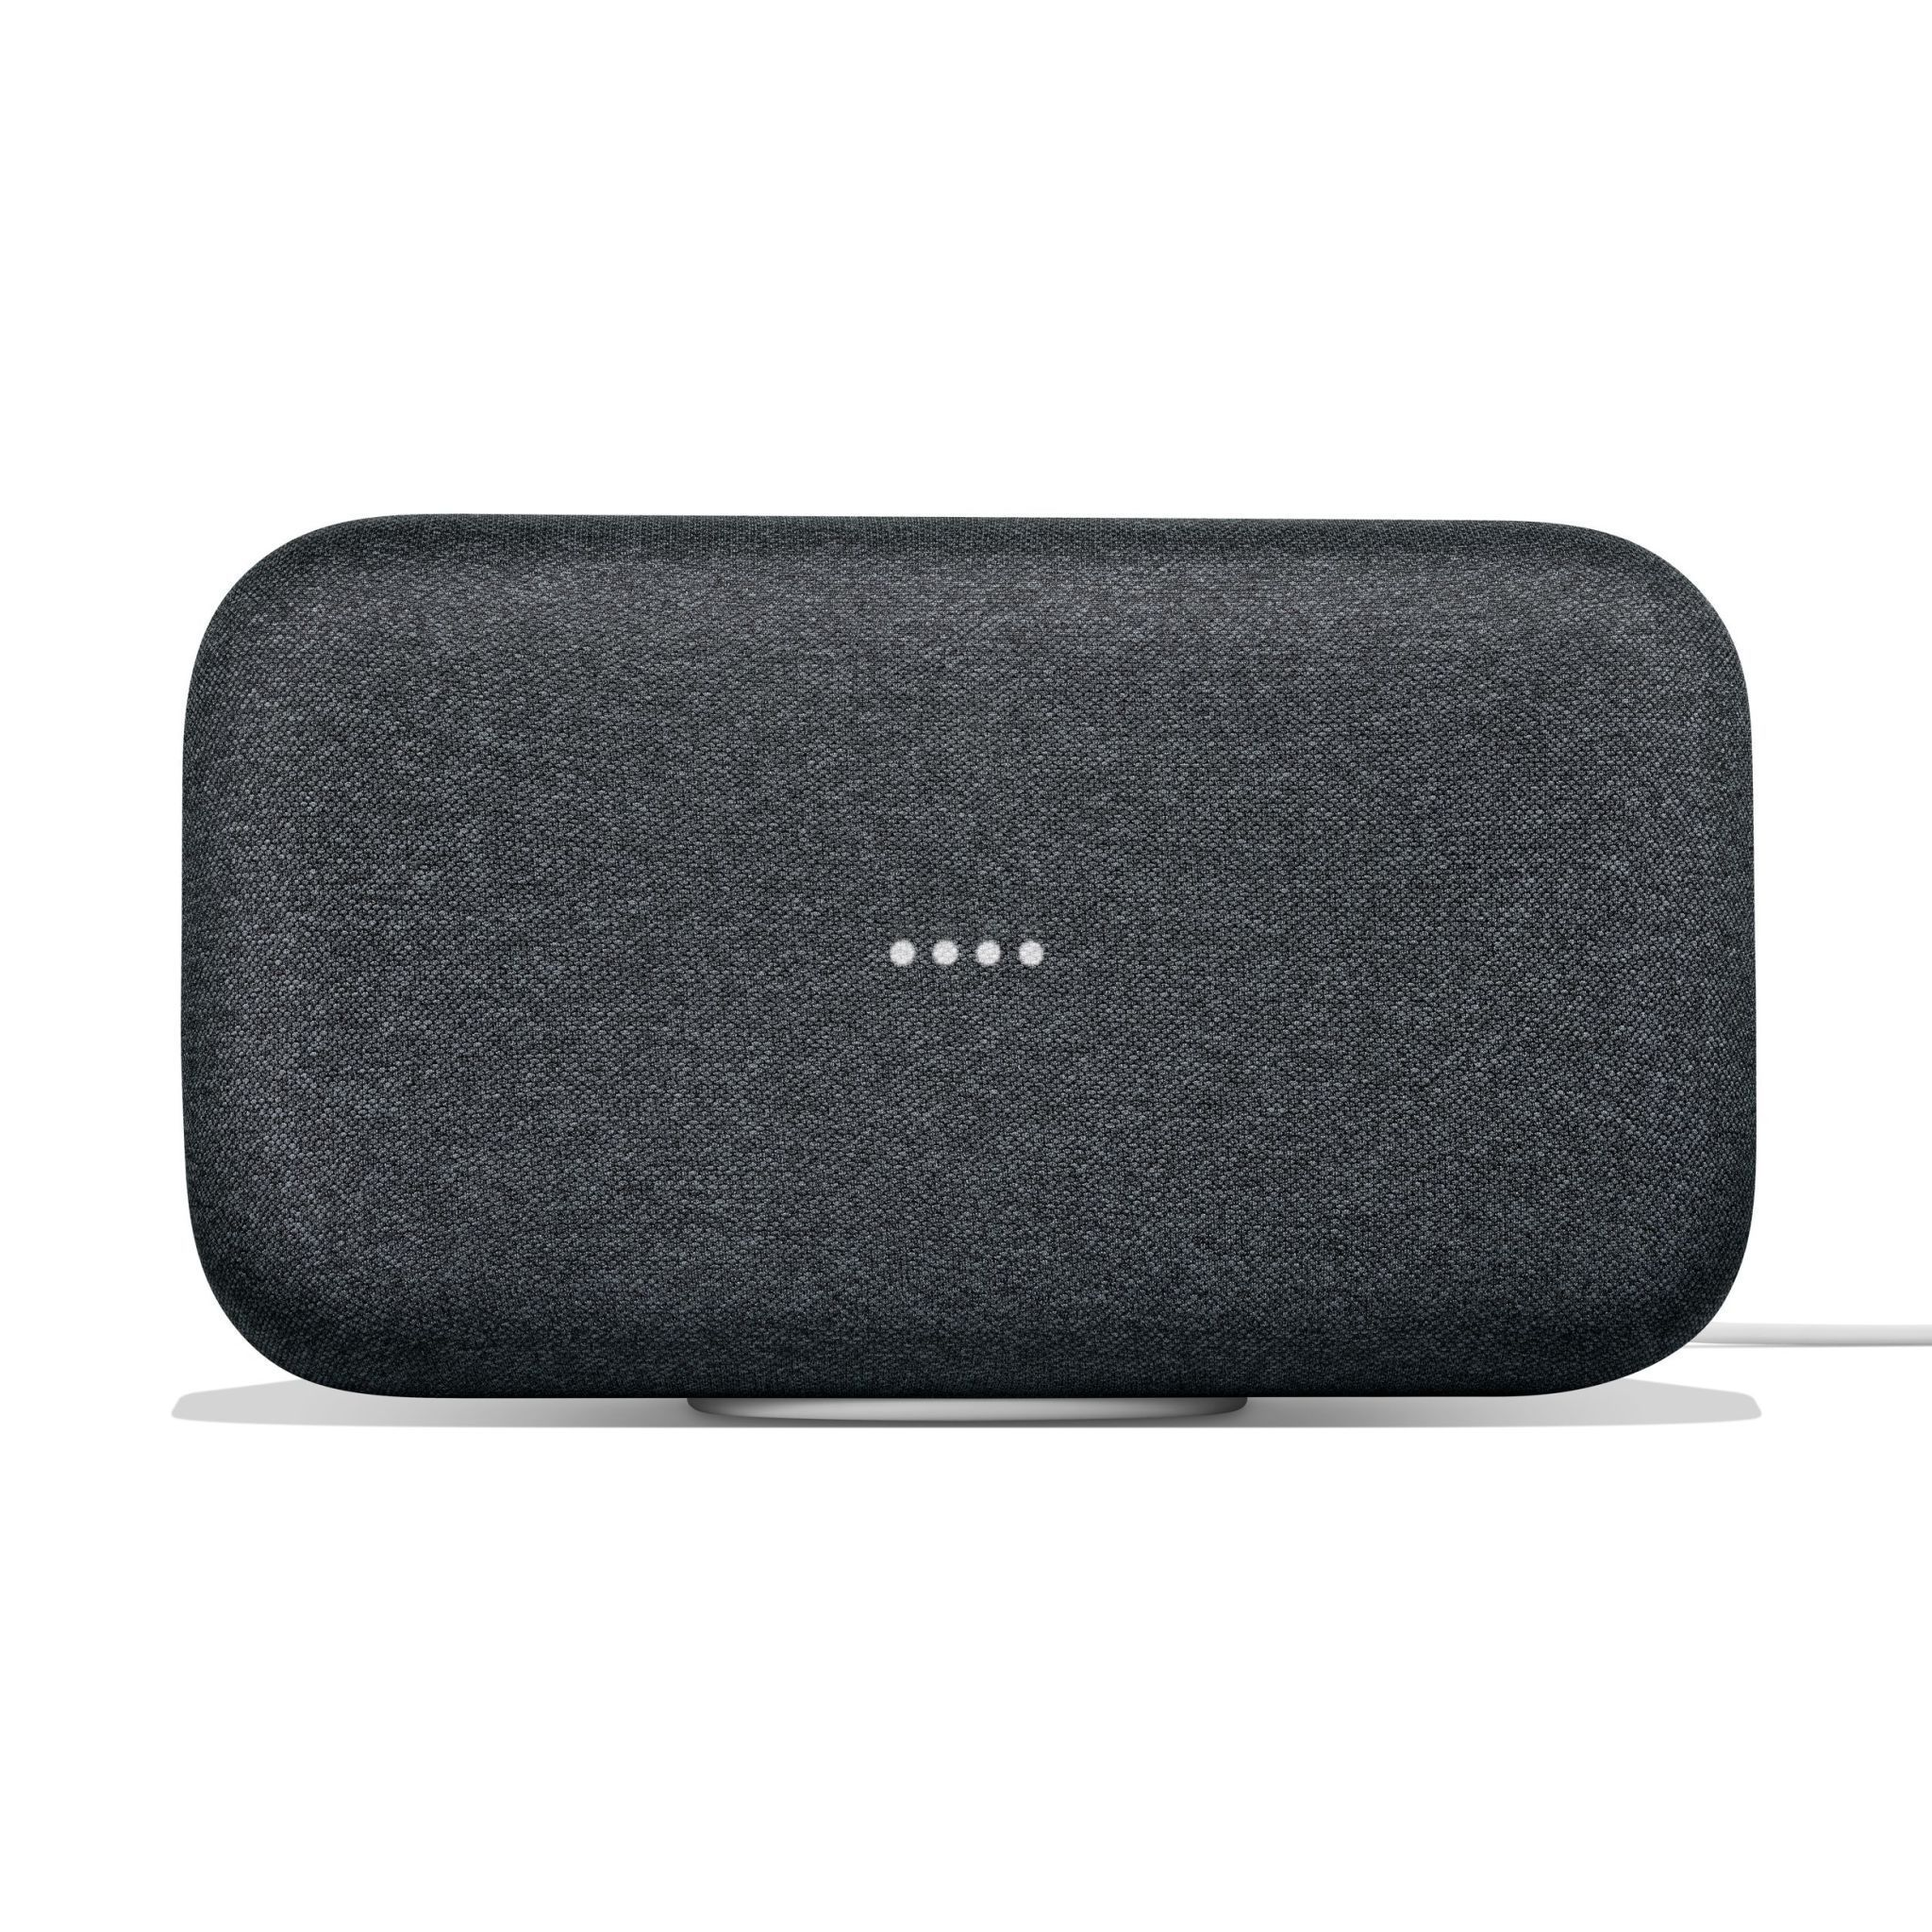 Google Home Max Smart Speaker